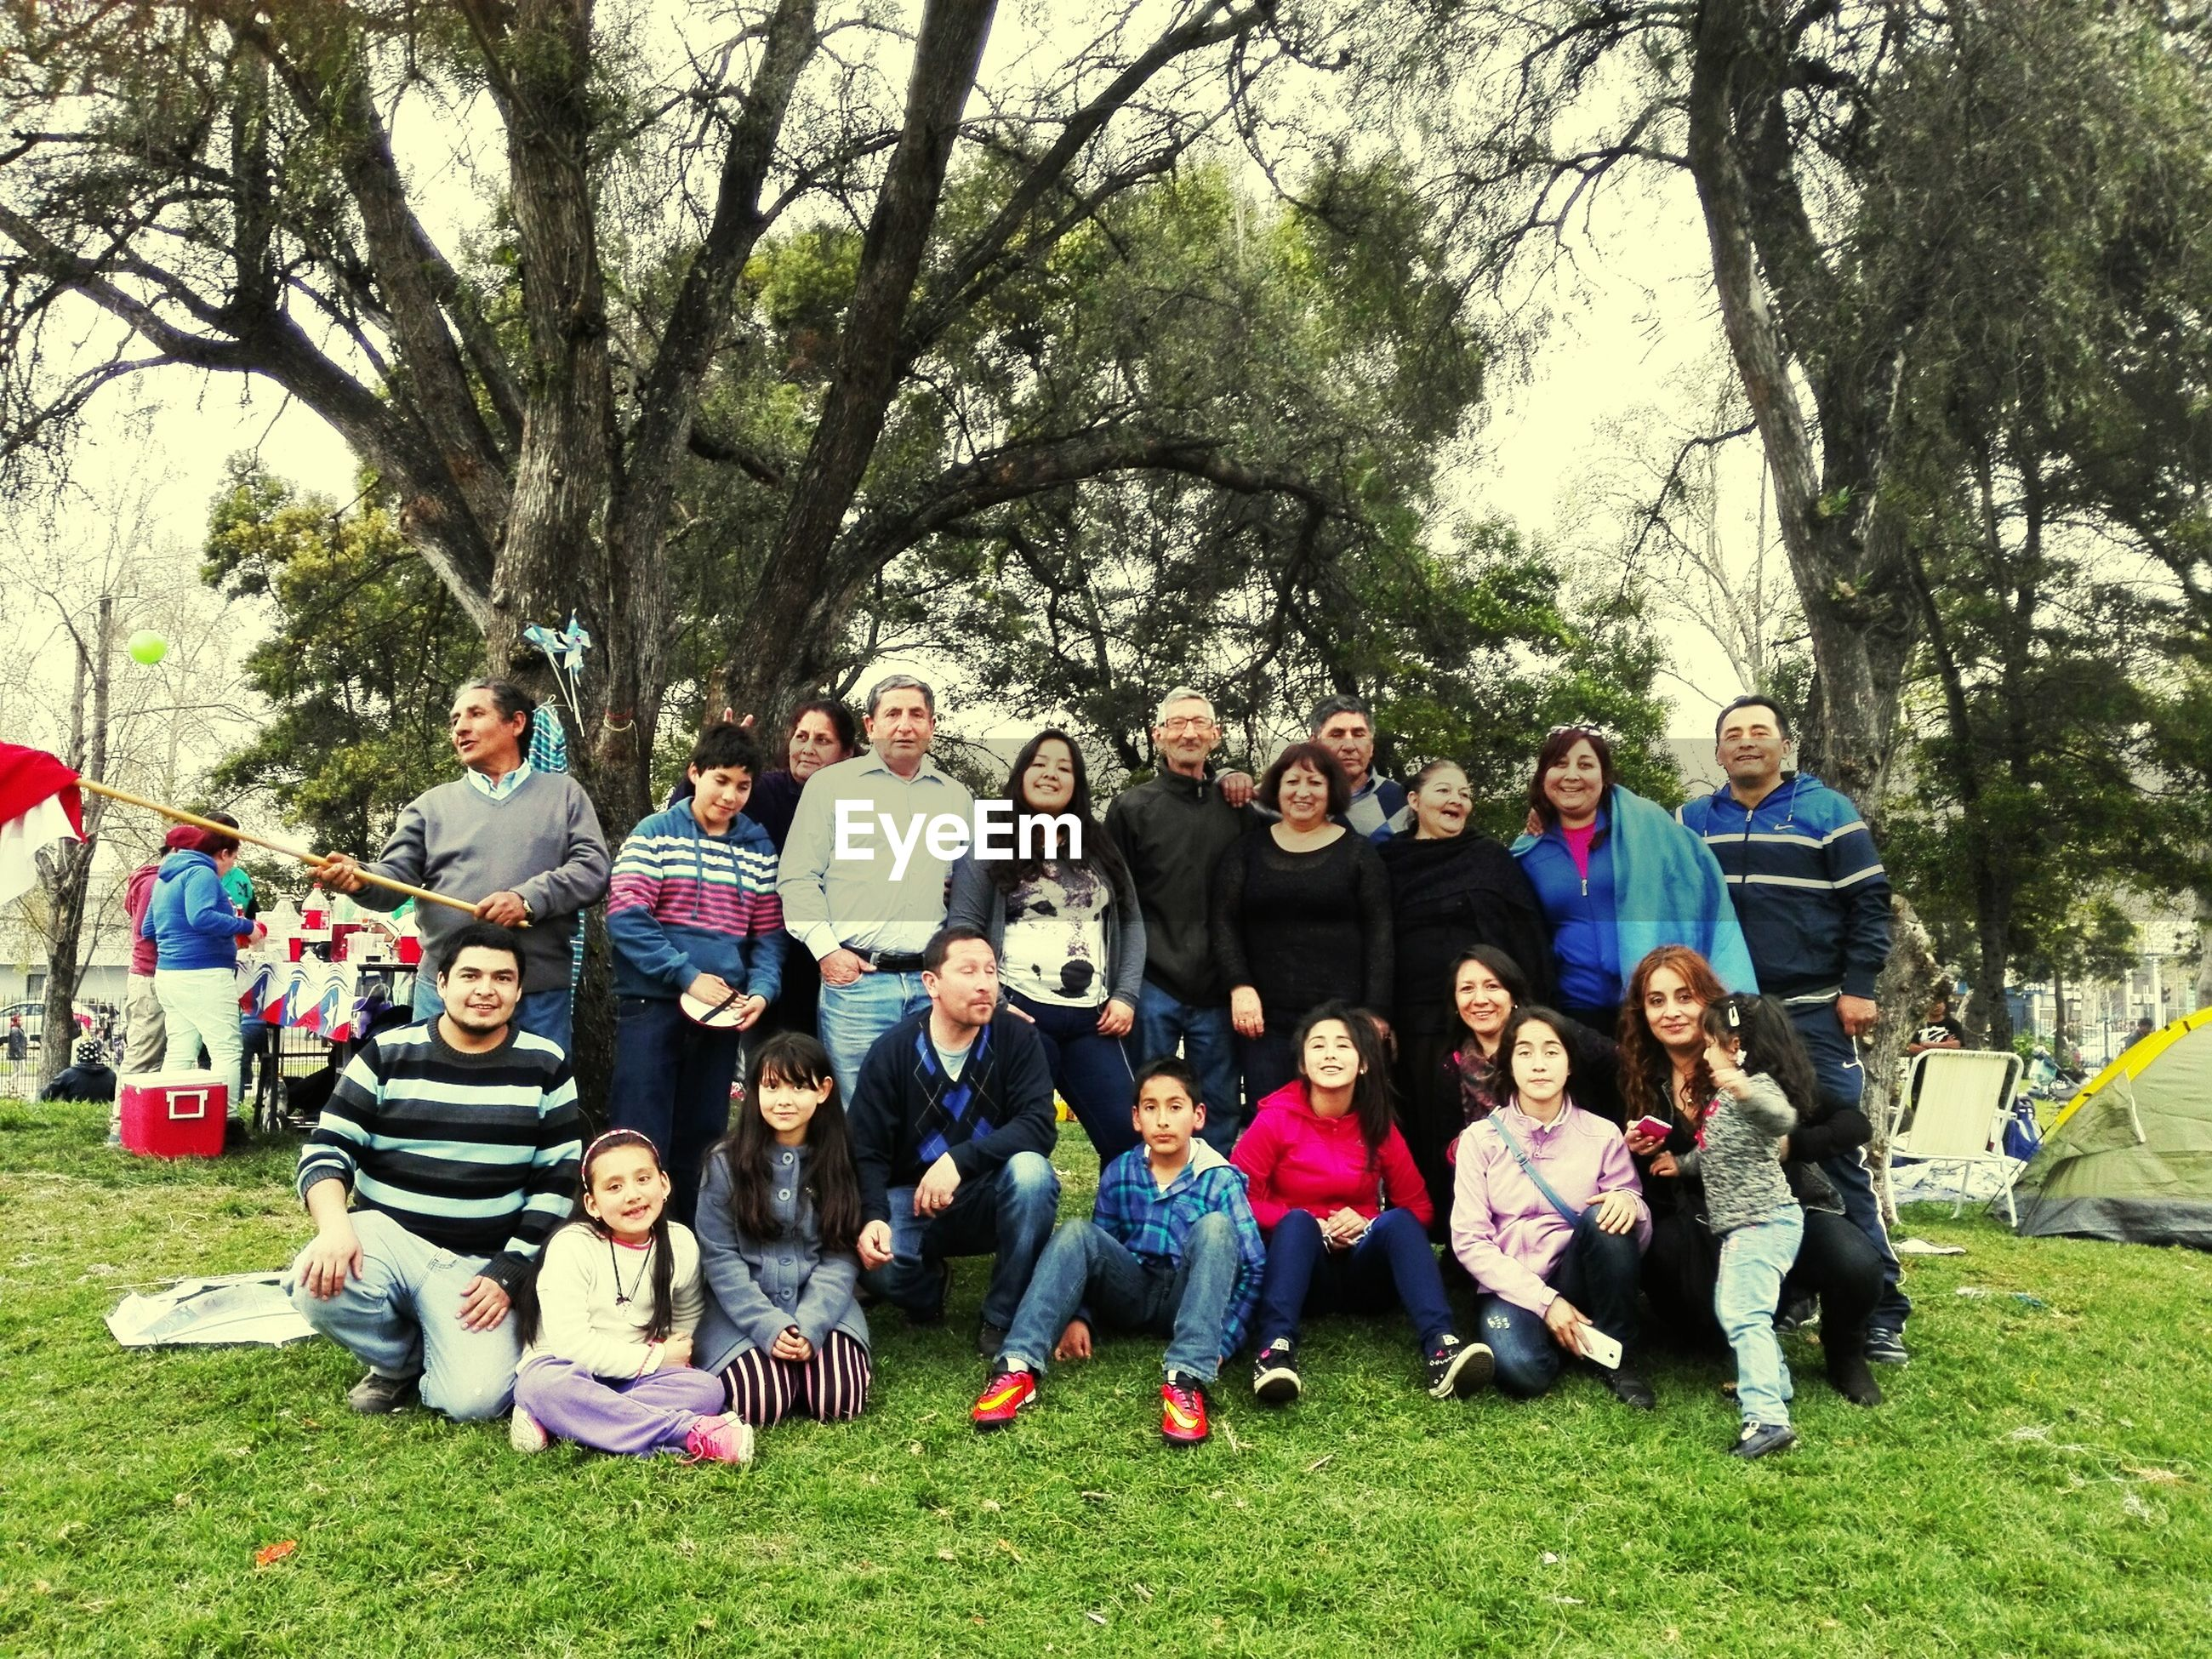 grass, lifestyles, leisure activity, togetherness, large group of people, men, person, tree, park - man made space, casual clothing, field, bonding, green color, full length, enjoyment, friendship, girls, park, sitting